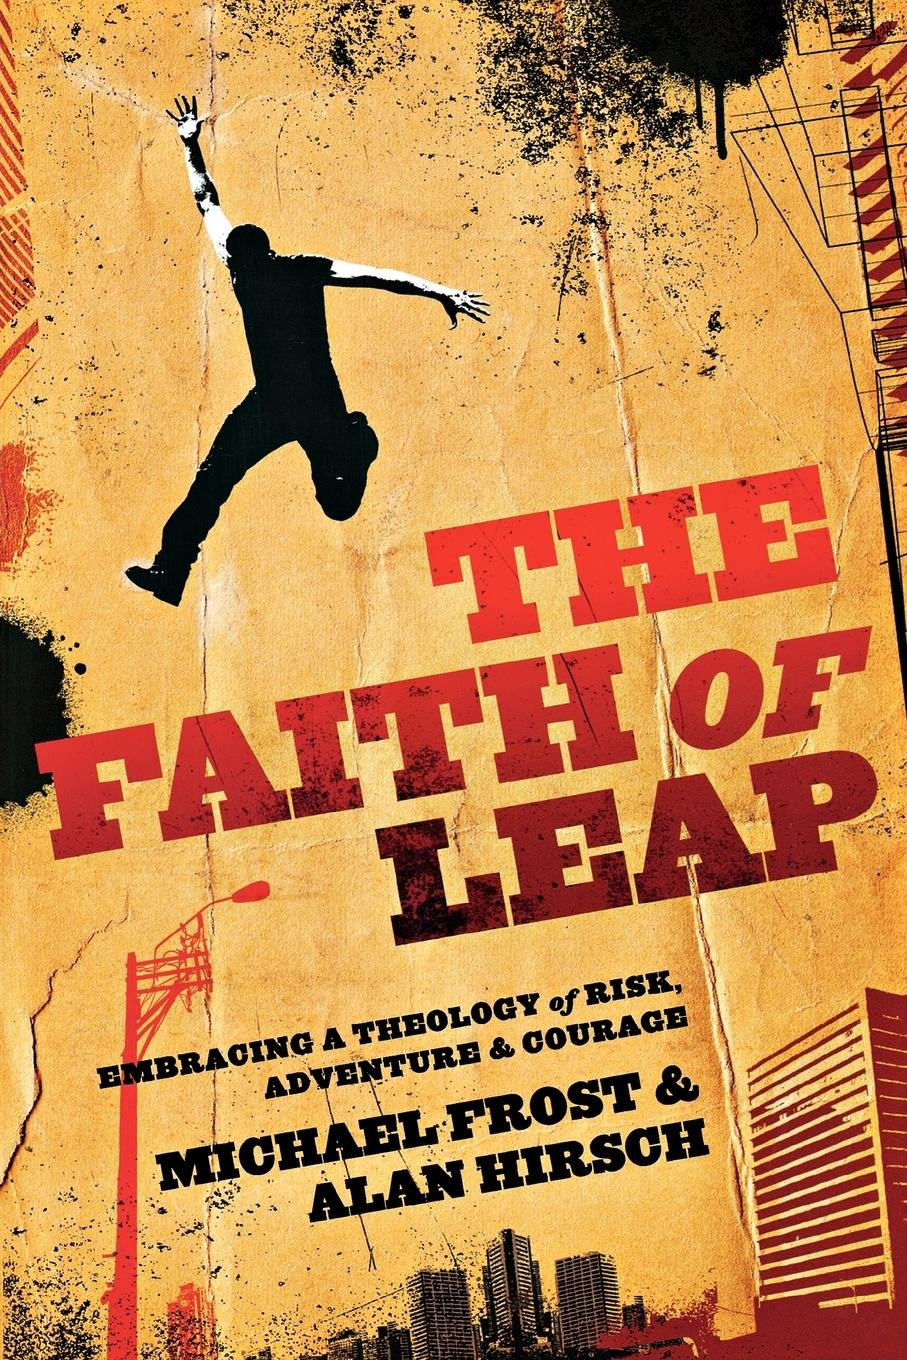 The Faith of Leap: Embracing a Theology of Risk, Adventure & Courage ...